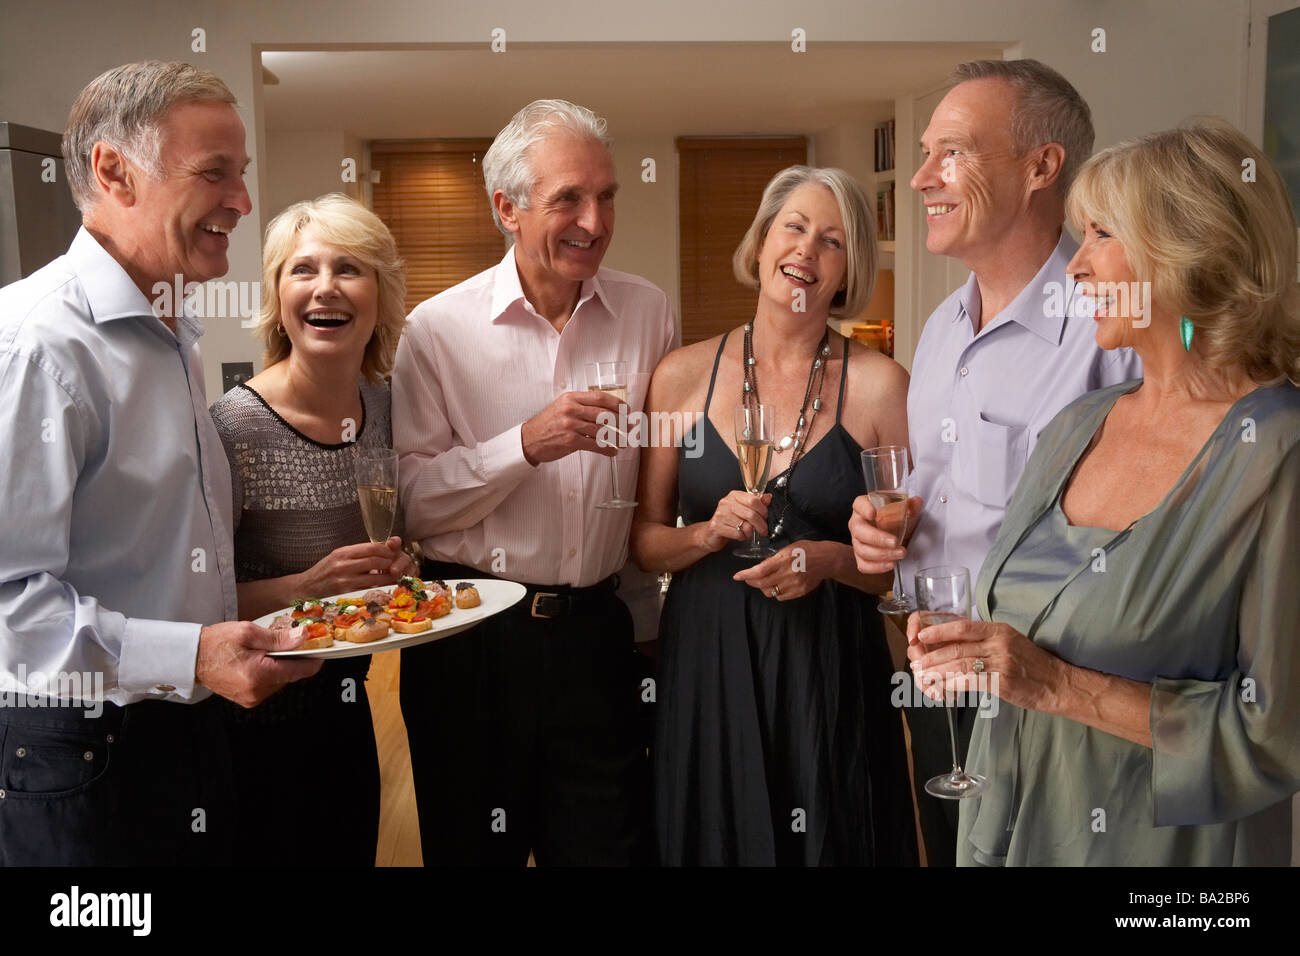 Man Serving Hors D'oeuvres To His Guests At A Dinner Party - Stock Image